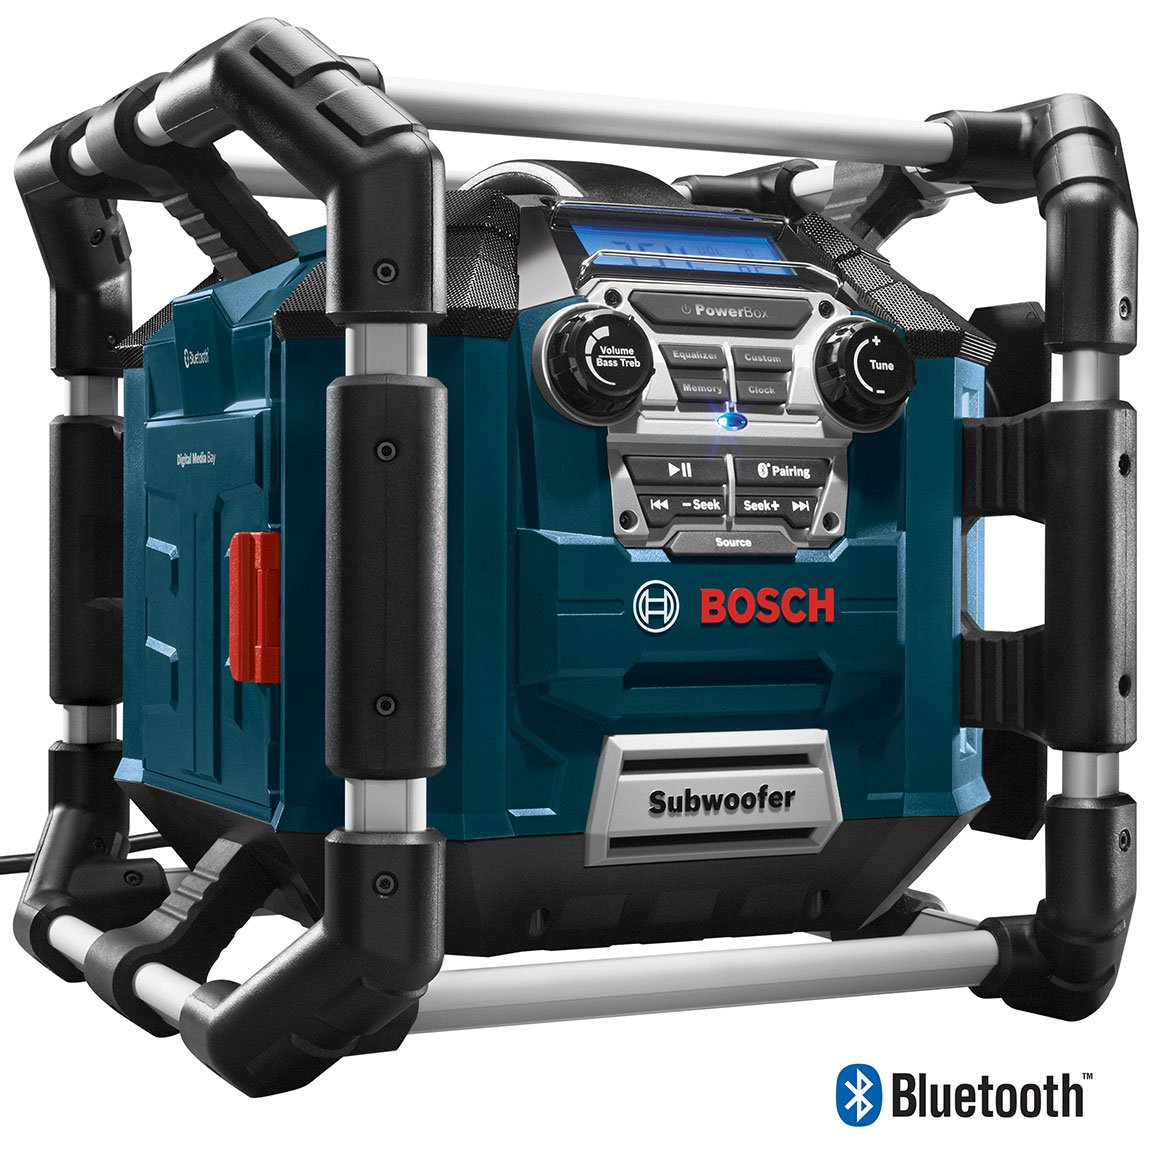 Bosch Bluetooth Power Box Jobsite Am Fm Radio Charger How To Turn Your Truck Into A Generator The Family Handyman Digital Media Stereo Pb360c Home Improvement